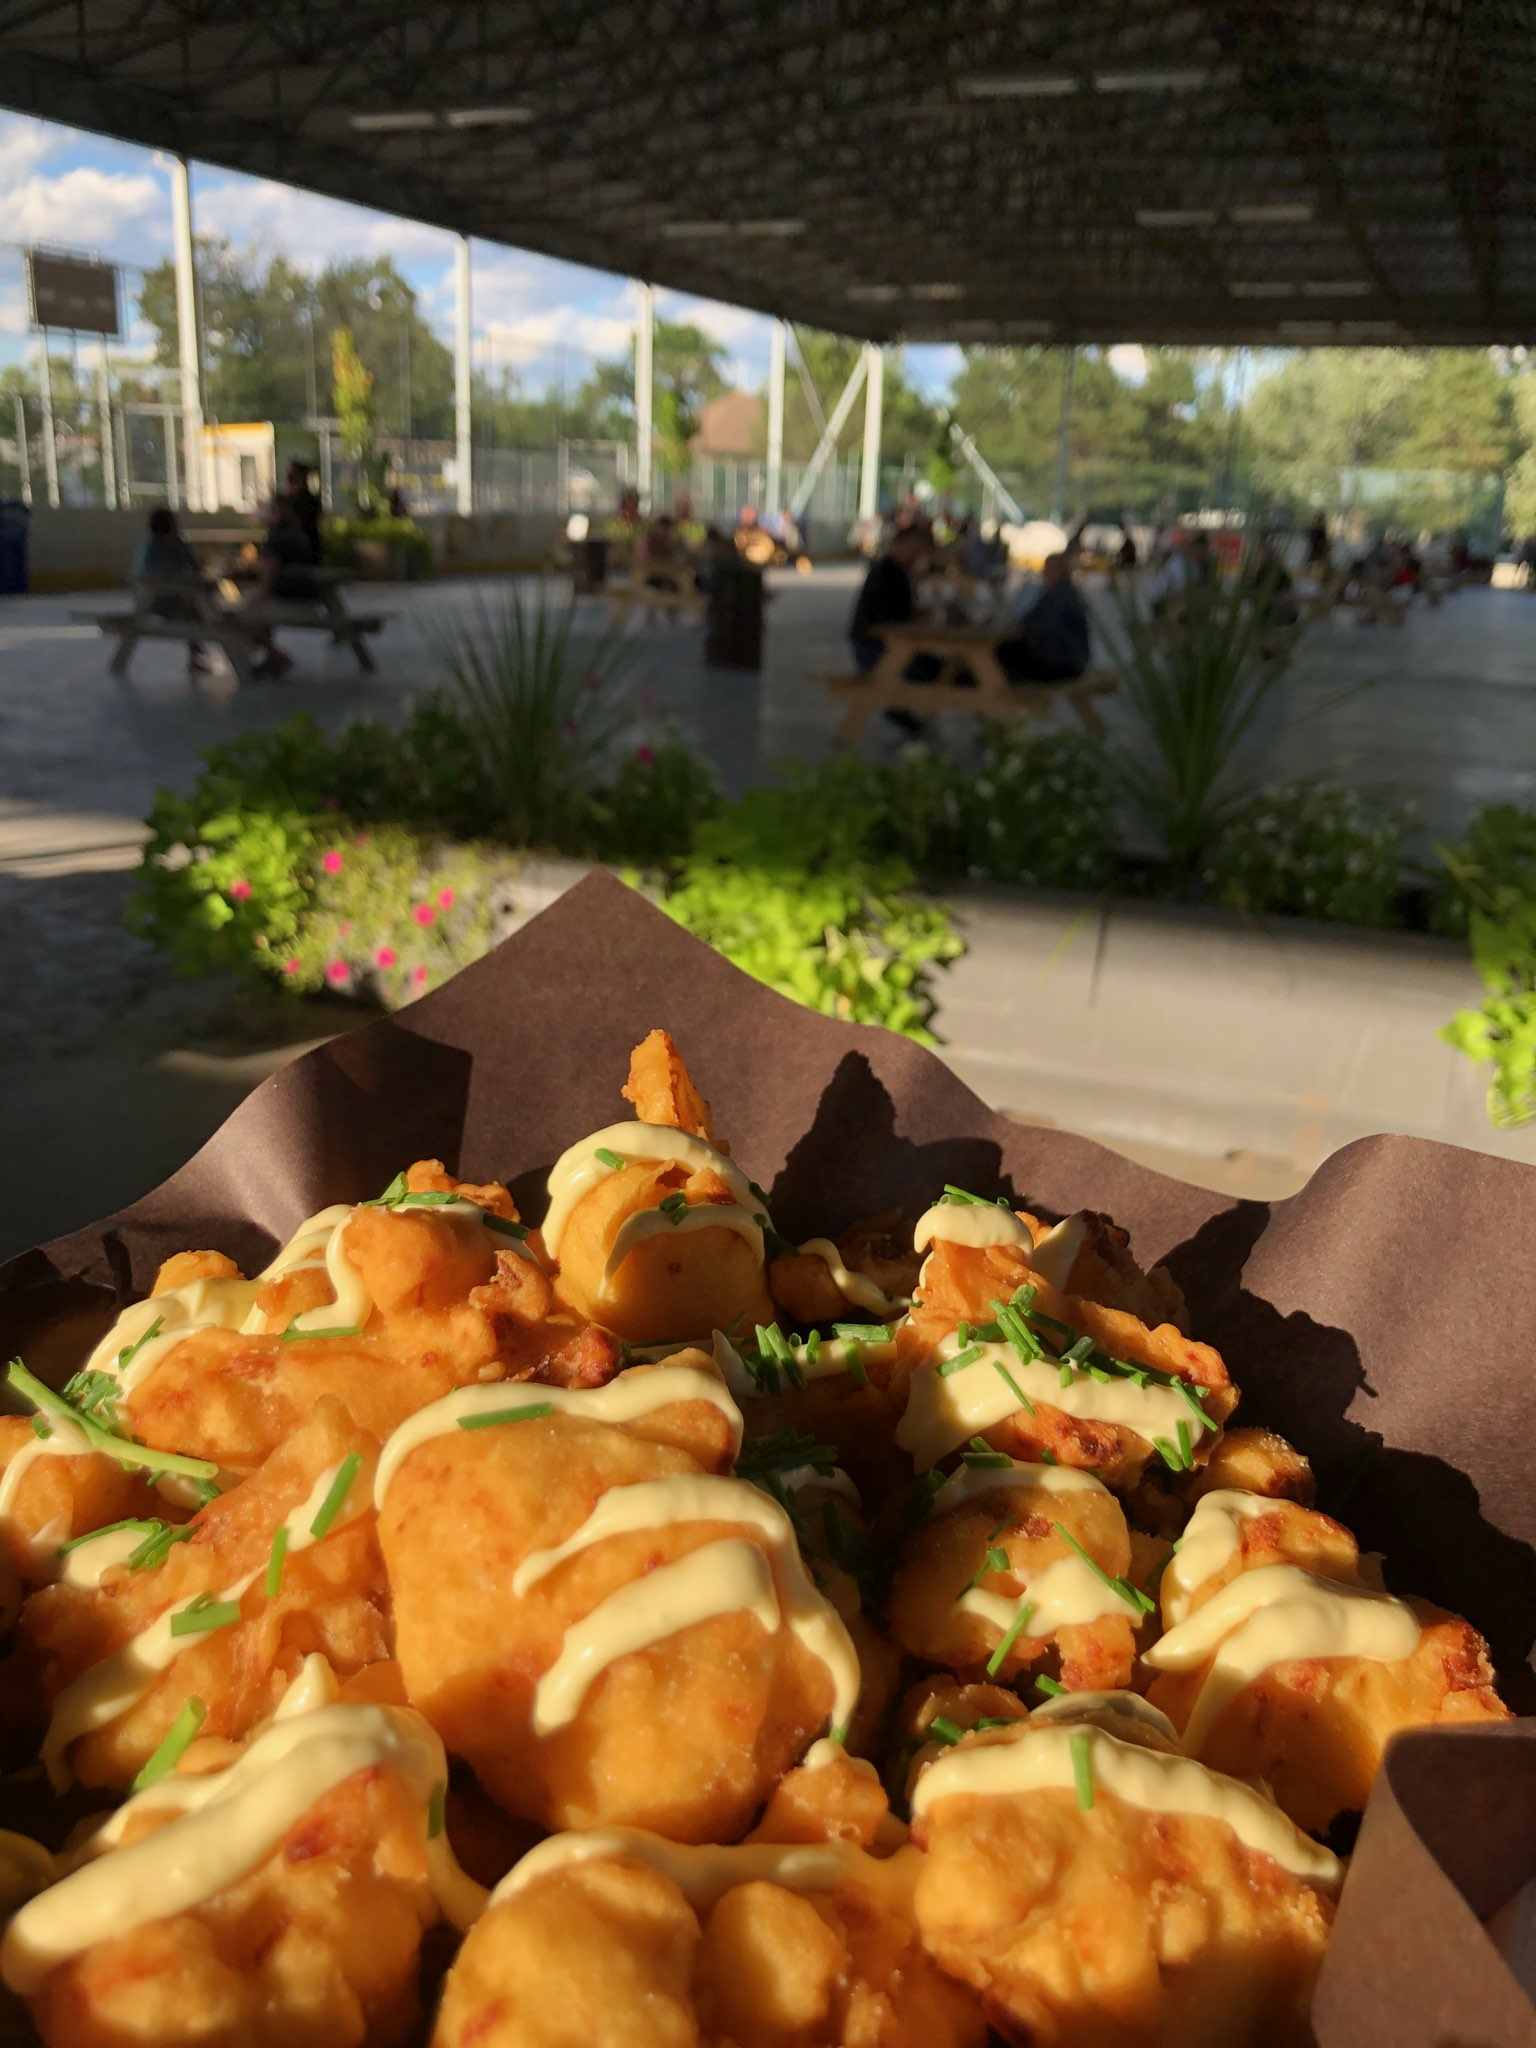 Cauli Crunch served up at the WindsorEats Outdoor Food Hall in Windsor, Ontario.